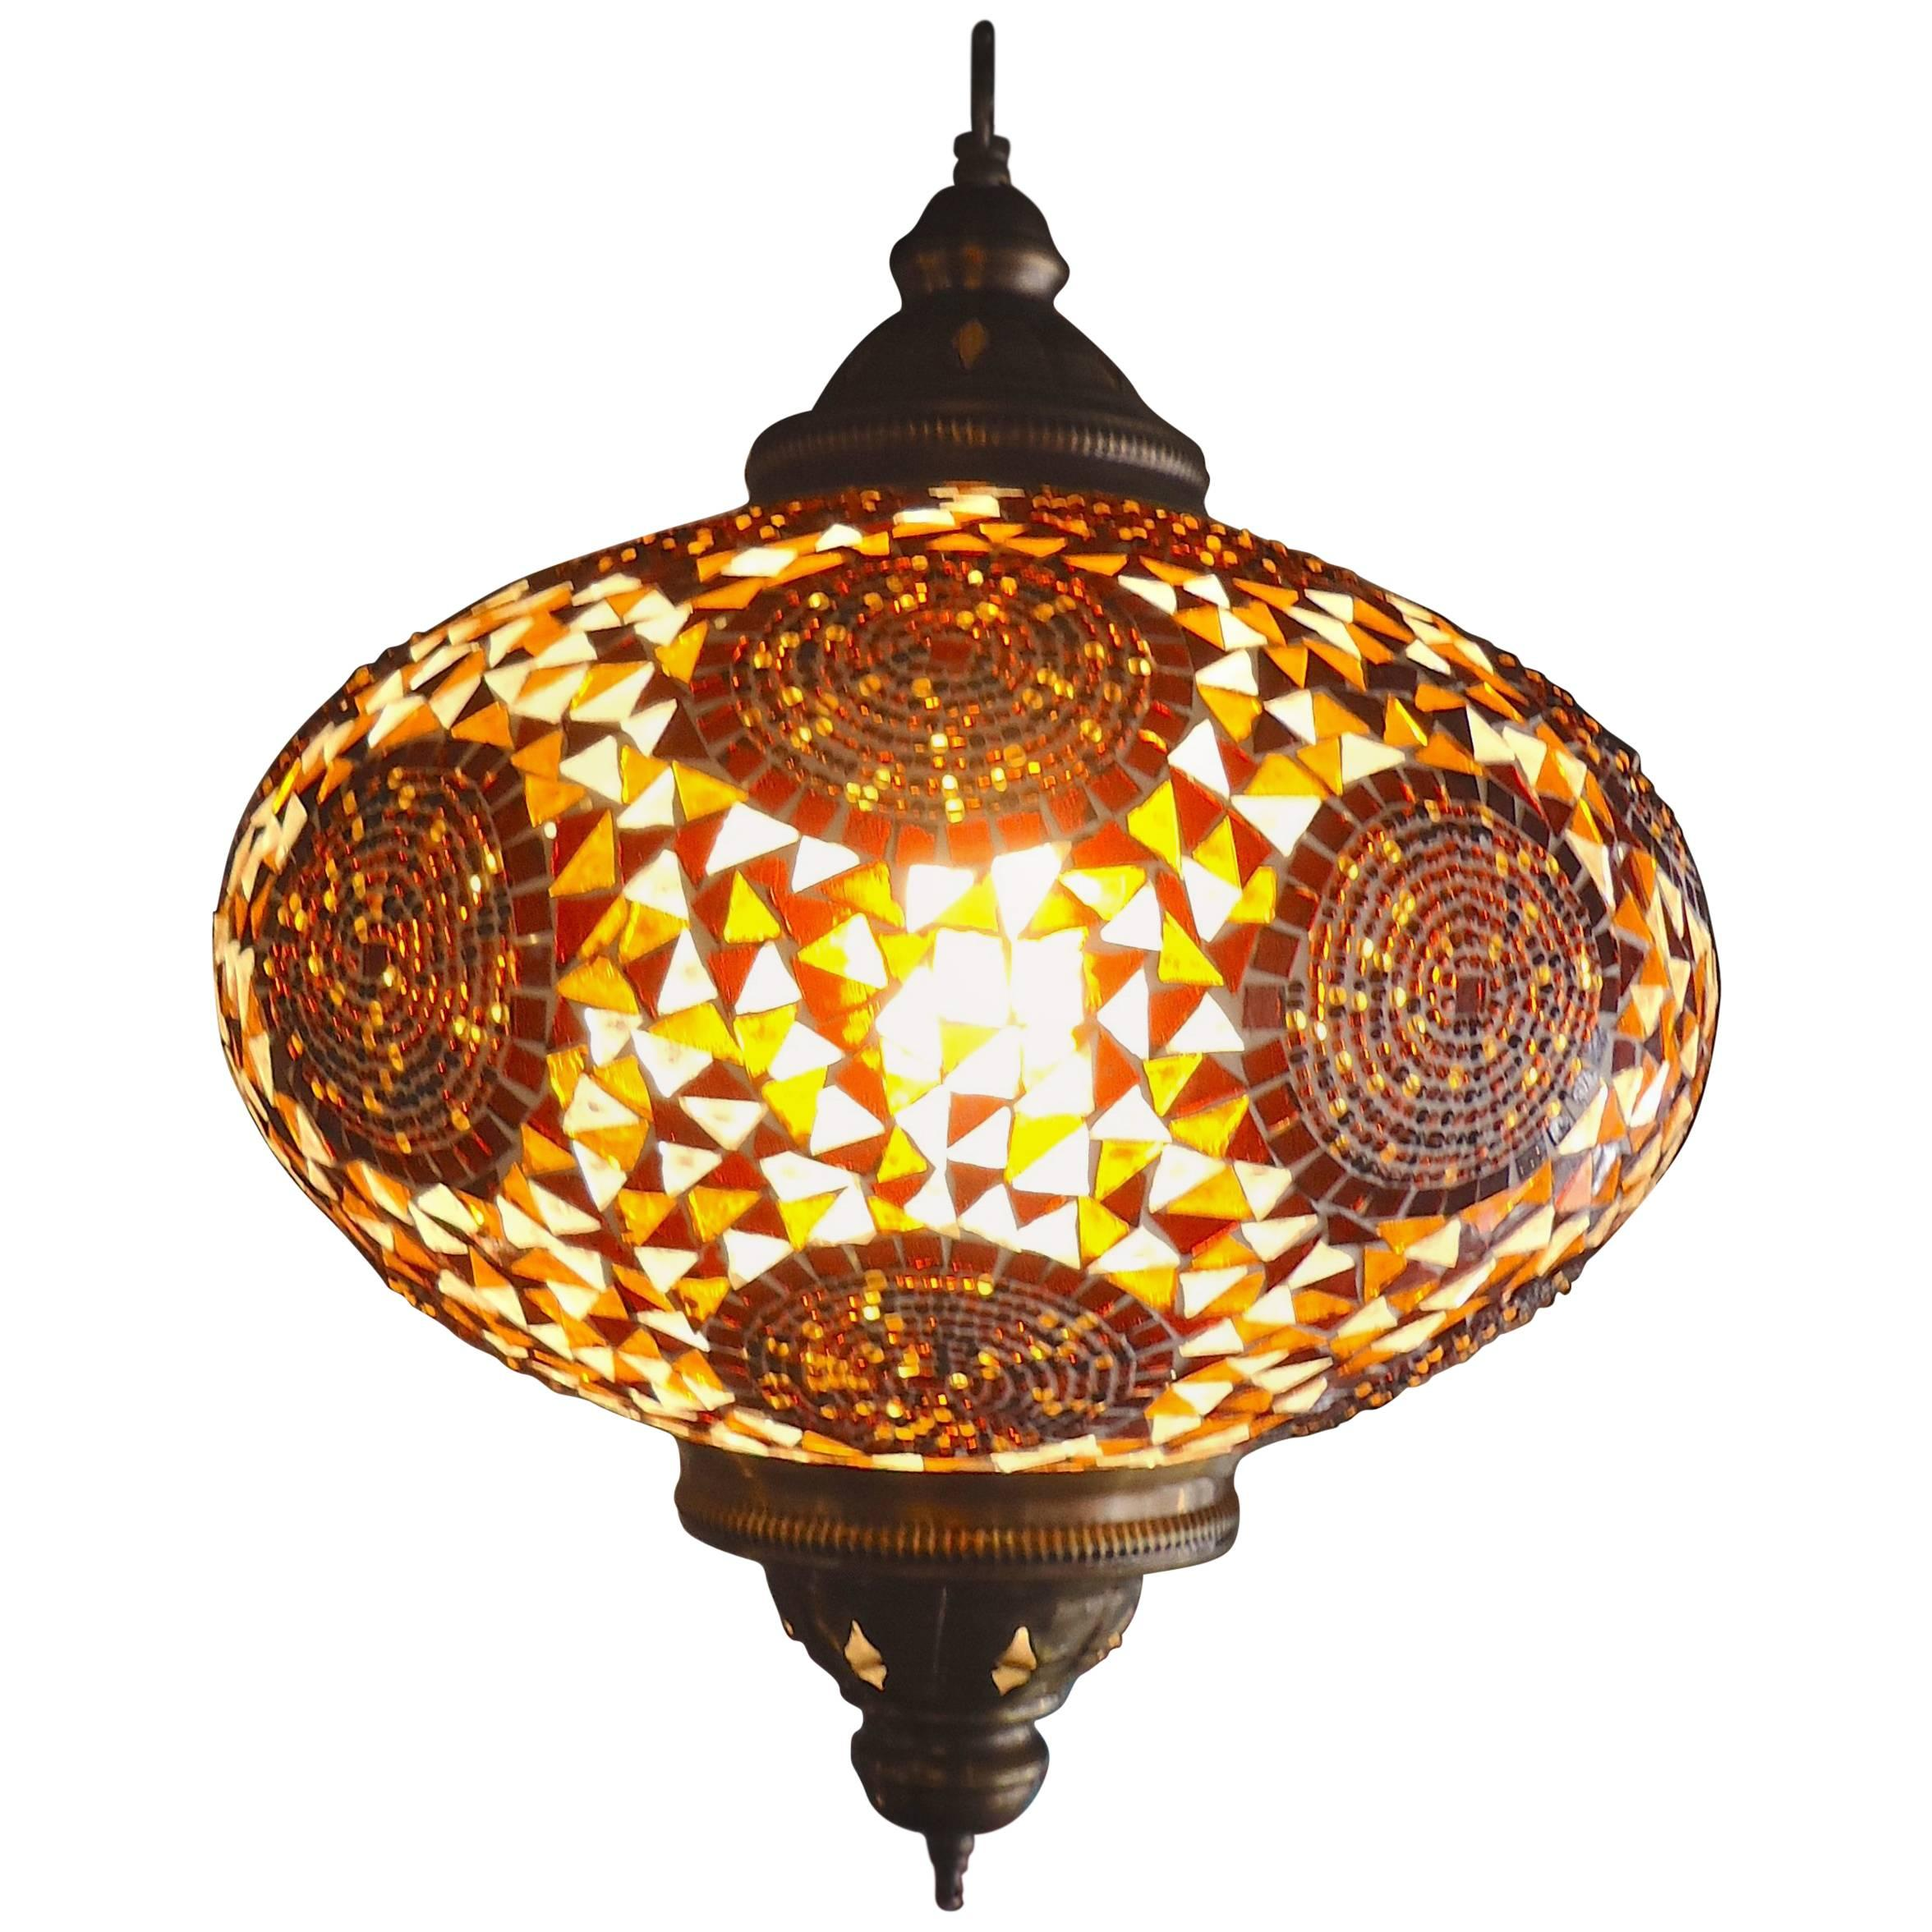 Turkish style glass pendant lamp